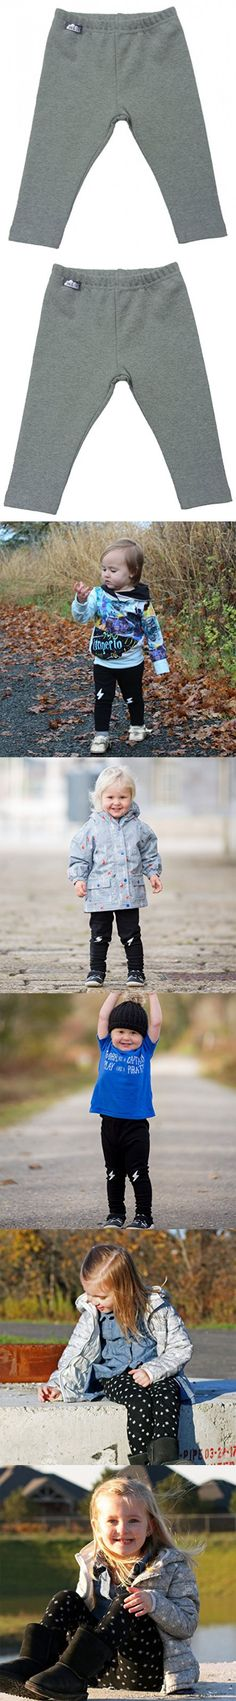 Jan /& Jul Winter Leggings for Boy or Girl Soft Stretchy Warm Cotton Blend Trousers